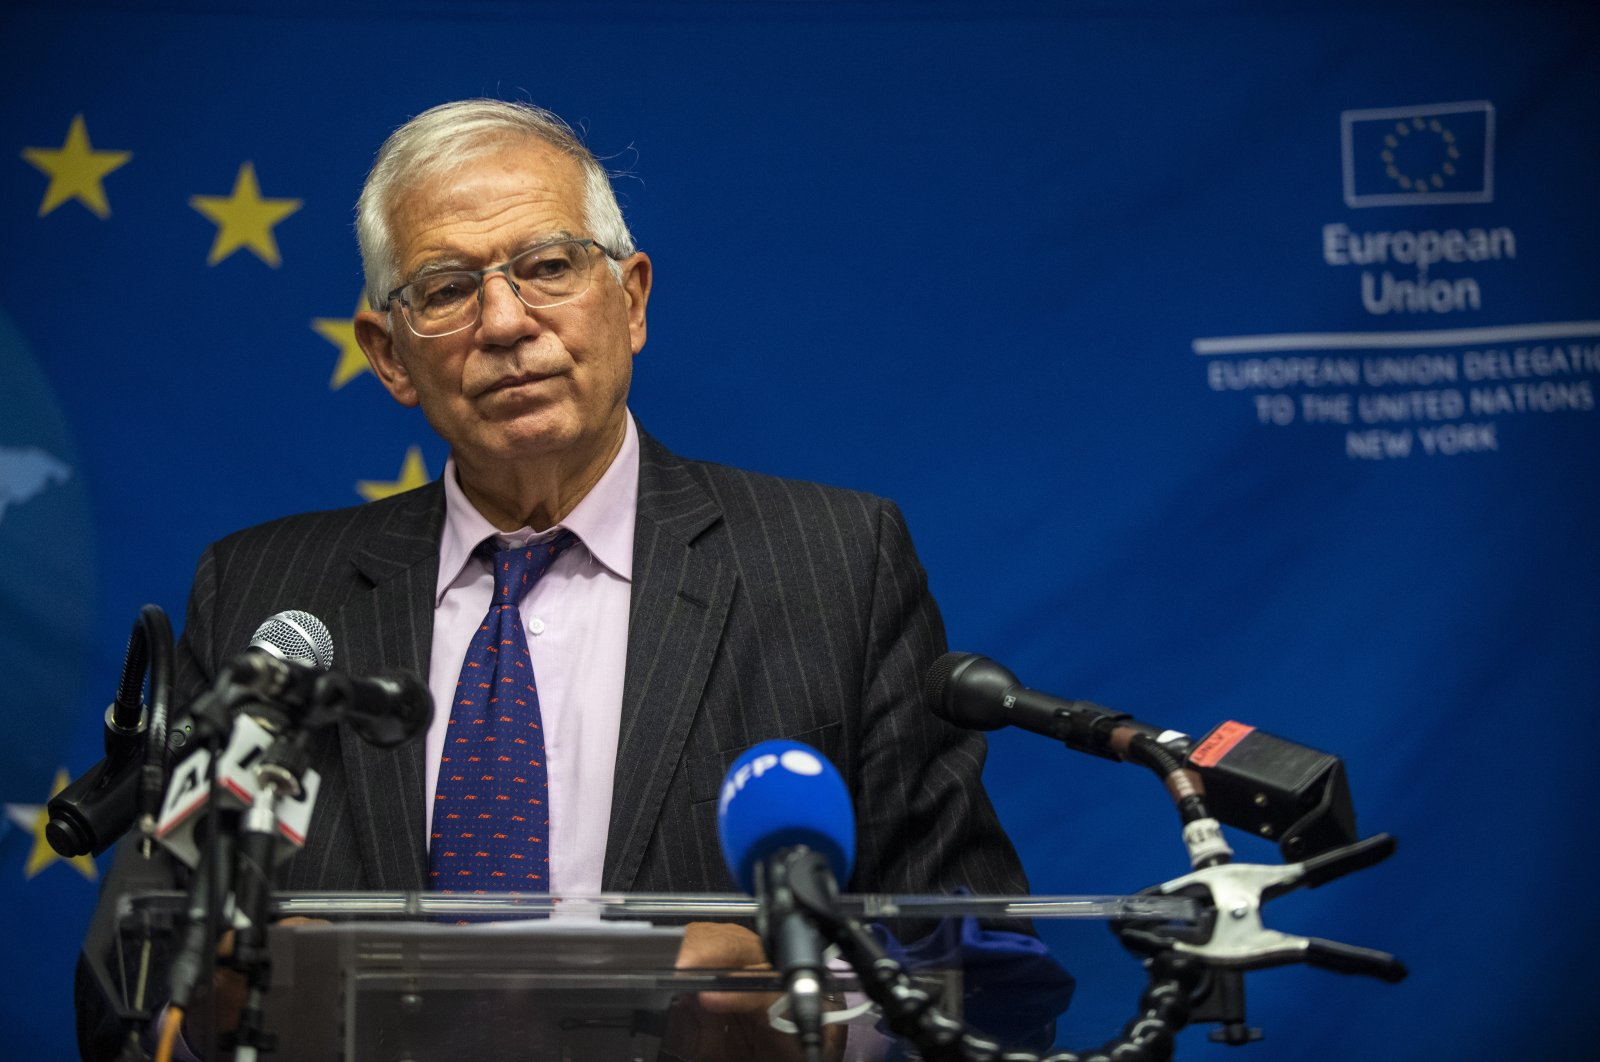 European Union foreign affairs chief Josep Borrell pauses while speaking to the press, New York, U.S., Sept. 20, 2021. (AP Photo)